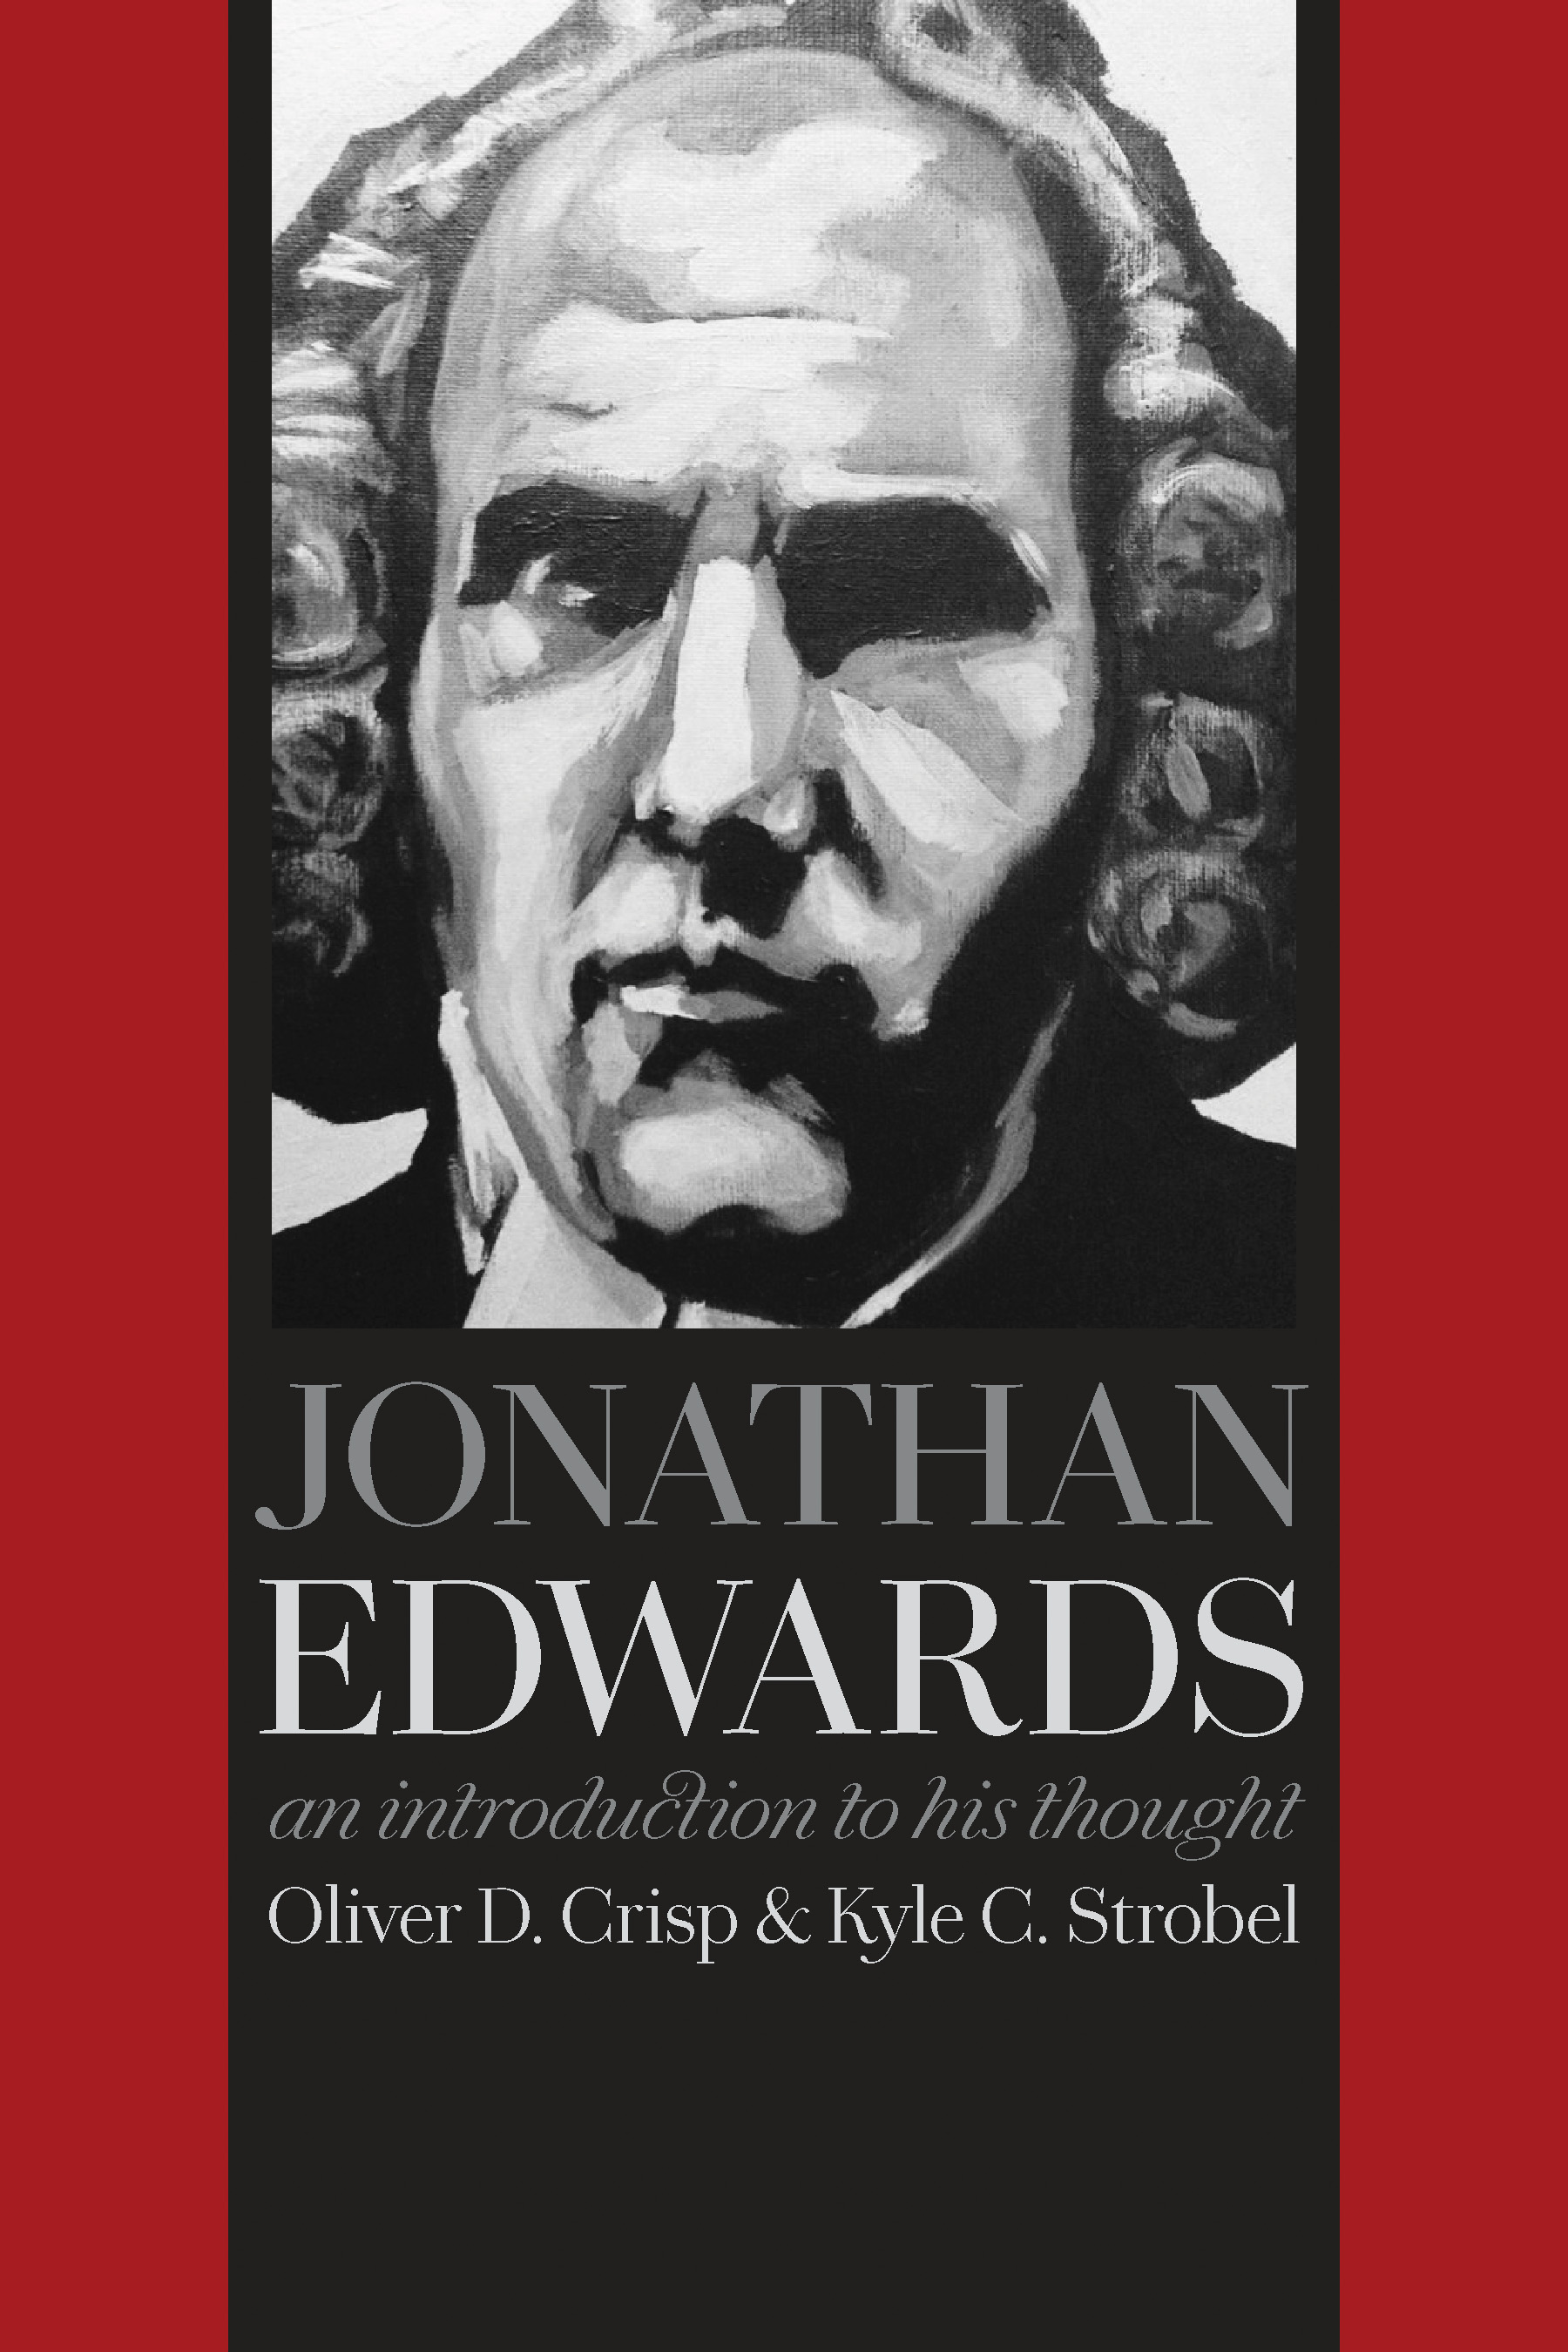 Jonathan Edwards Recent Books On His Life And Thought